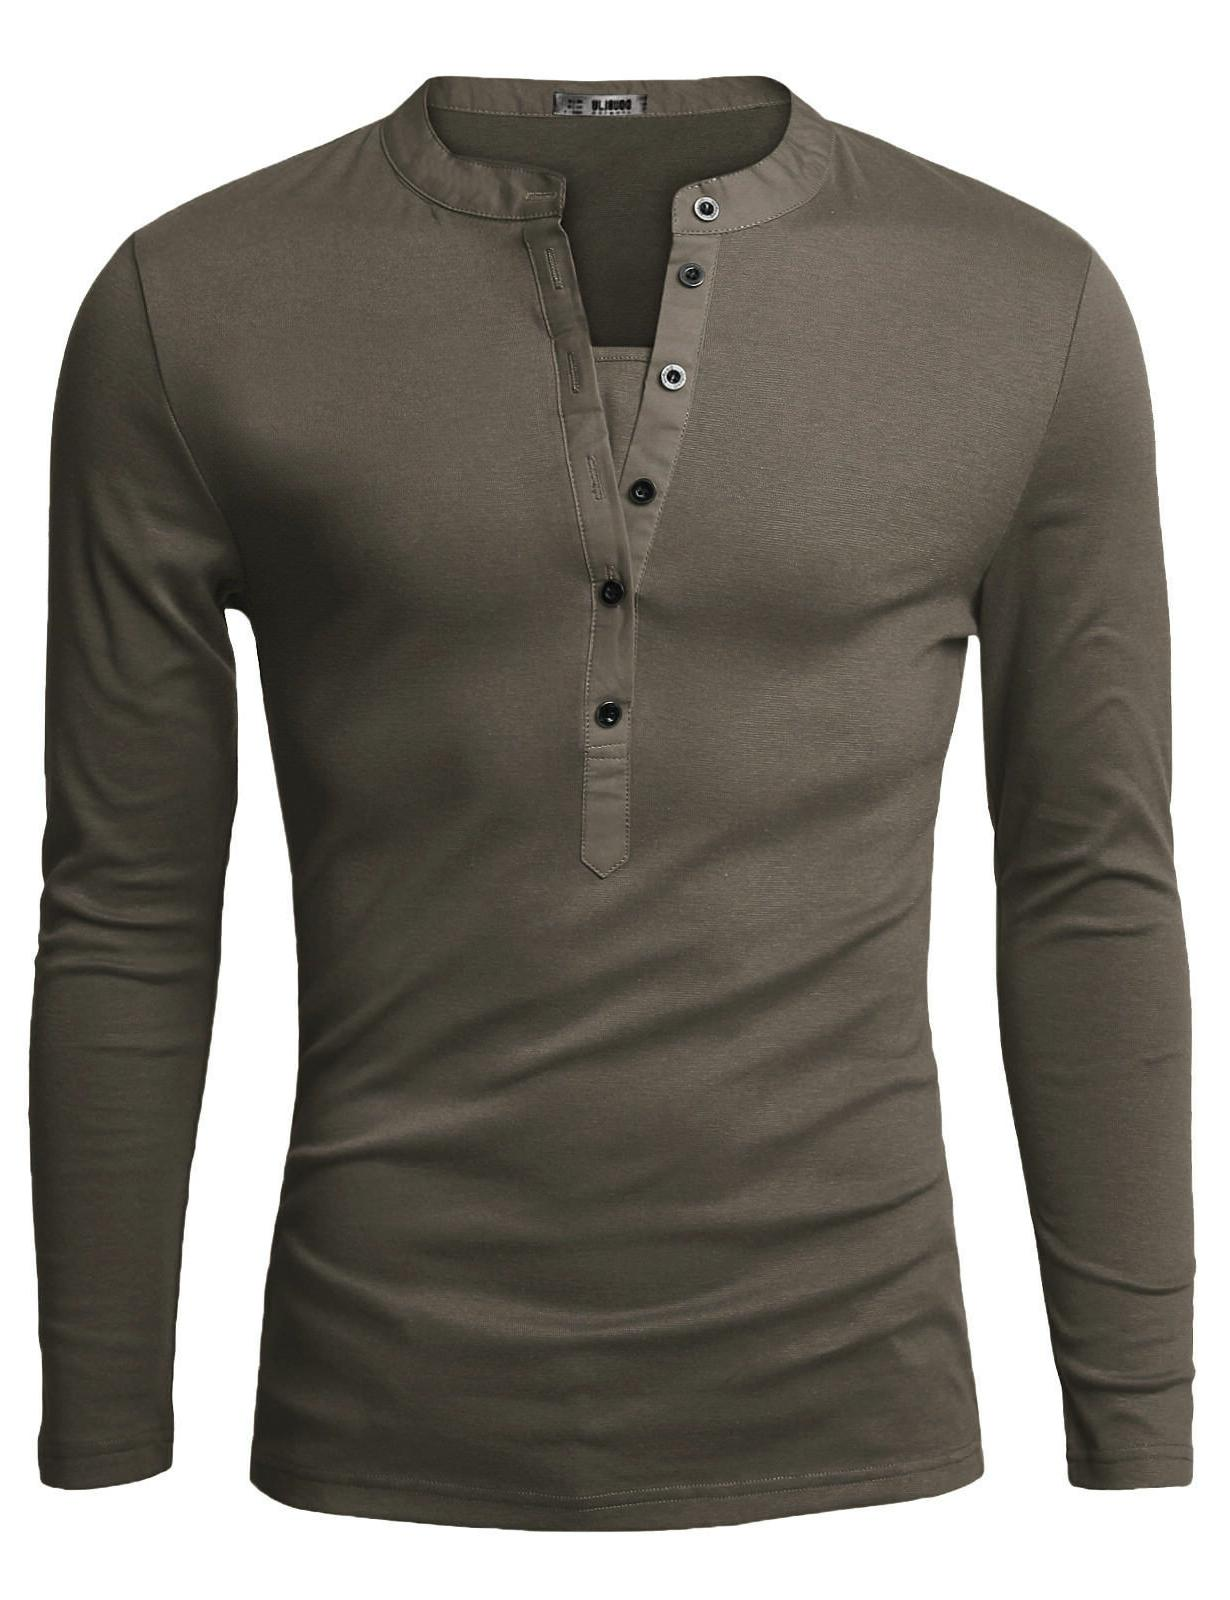 Doublju Fit Sleeve Henley Shirts